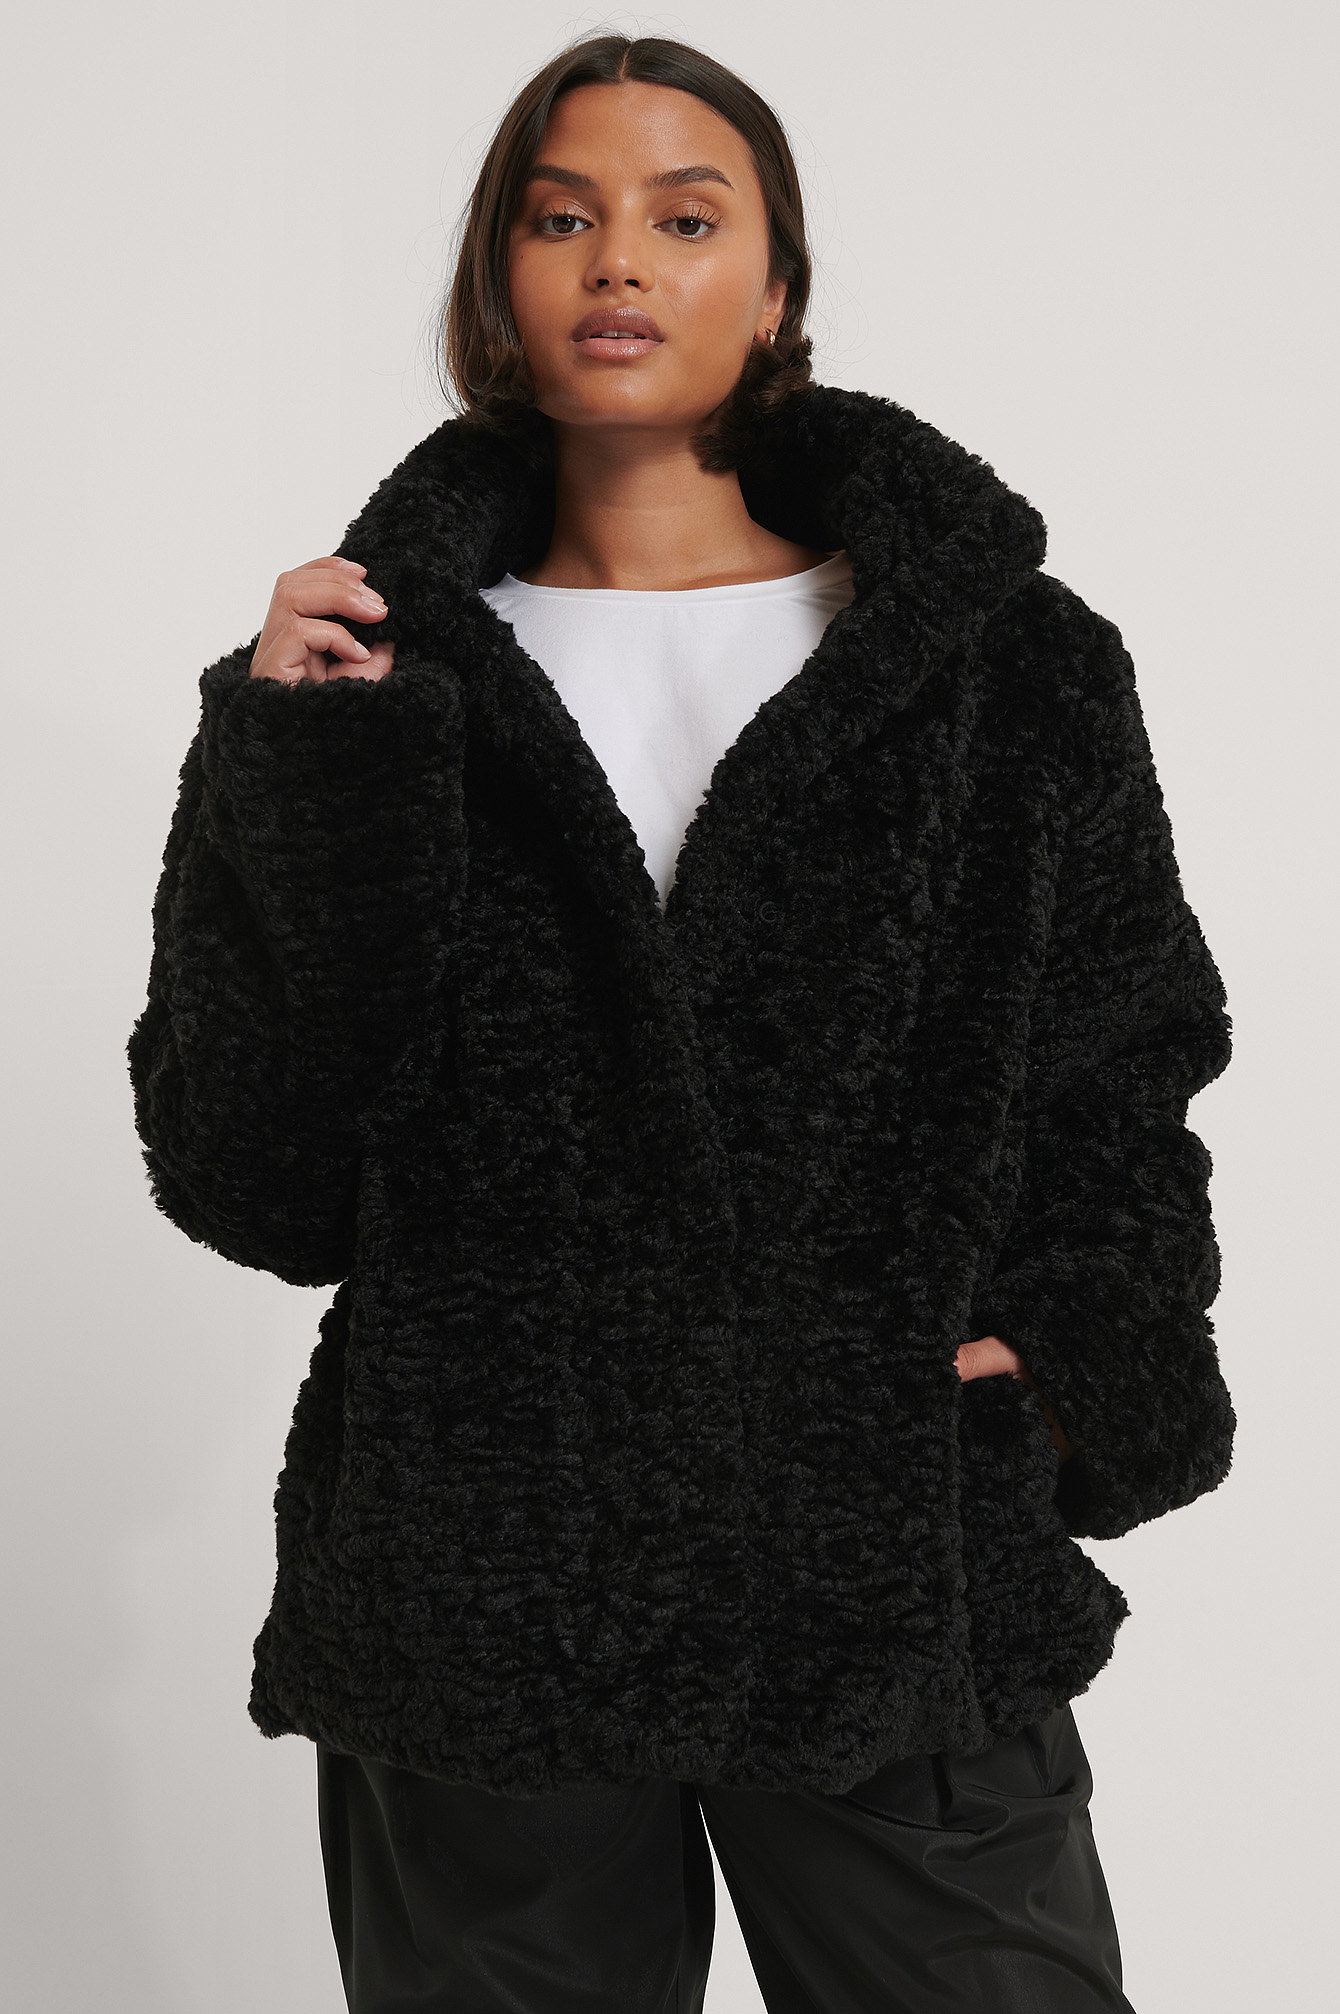 Black Curly Teddy Jacket